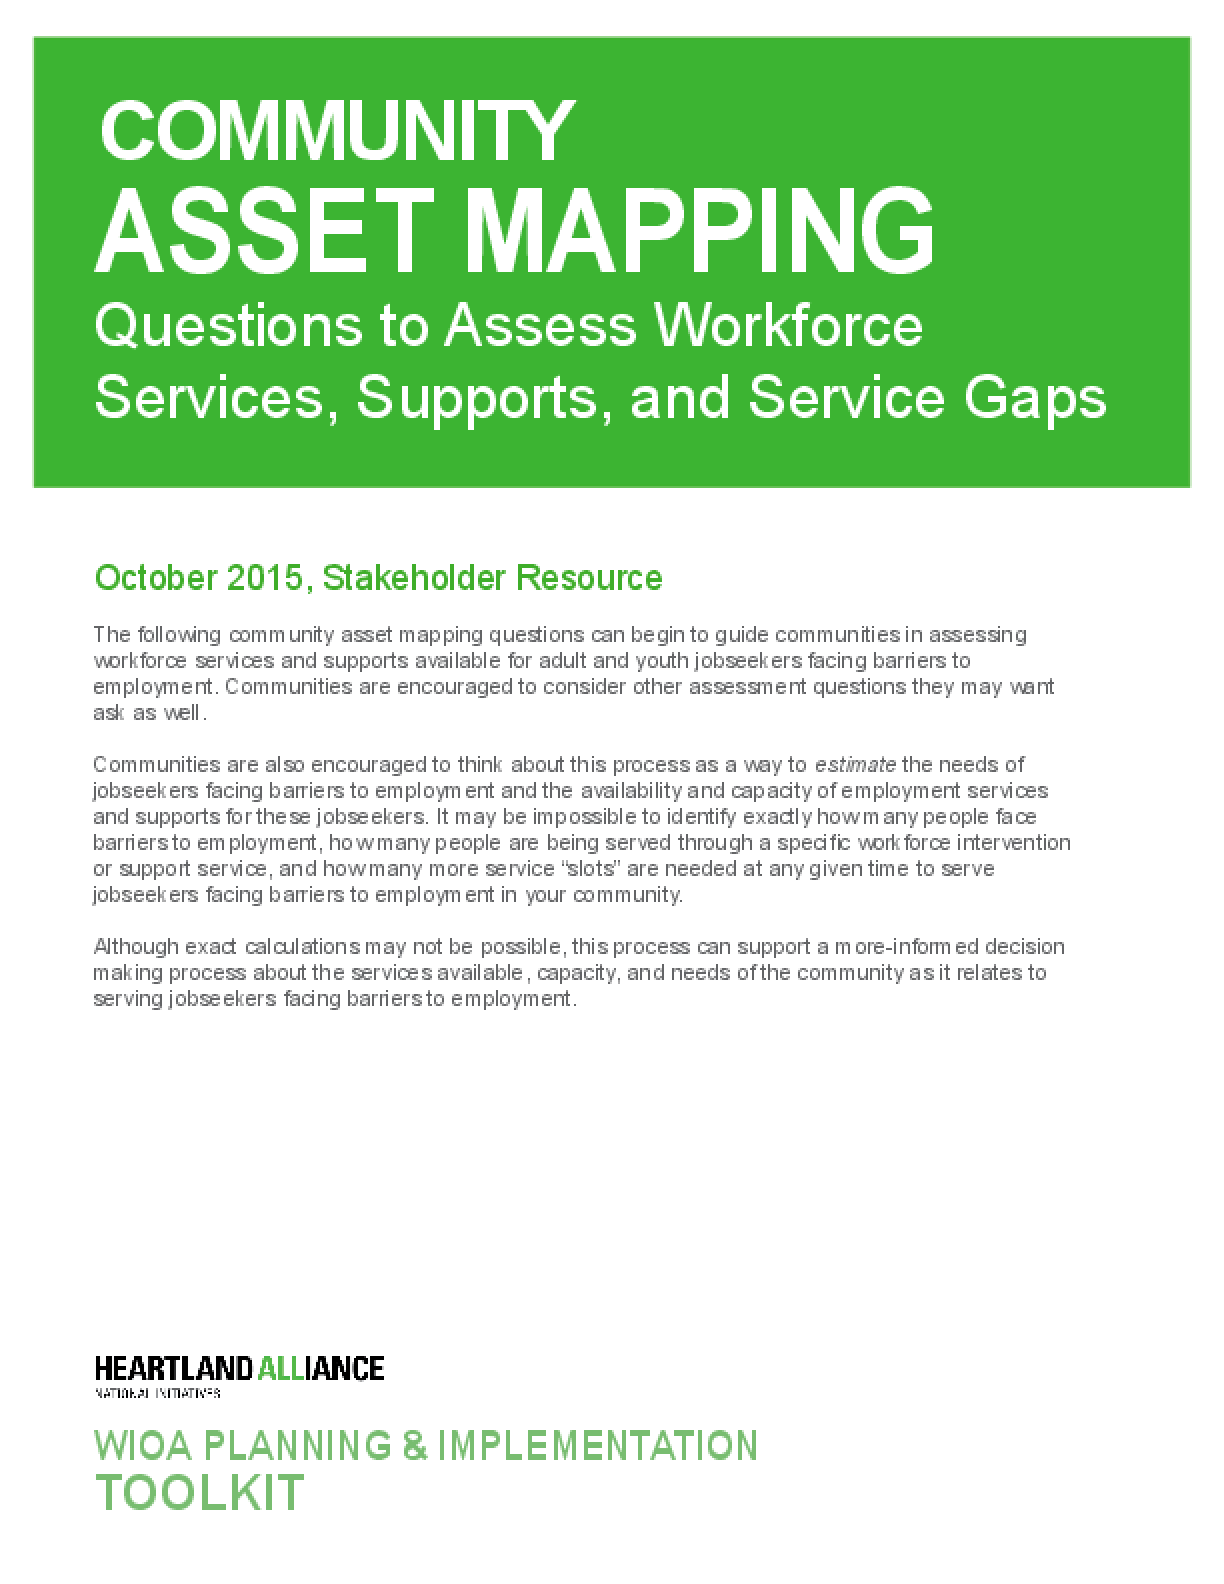 Community Asset Mapping: Questions to Assess Workforce Services, Supports, and Service Gaps